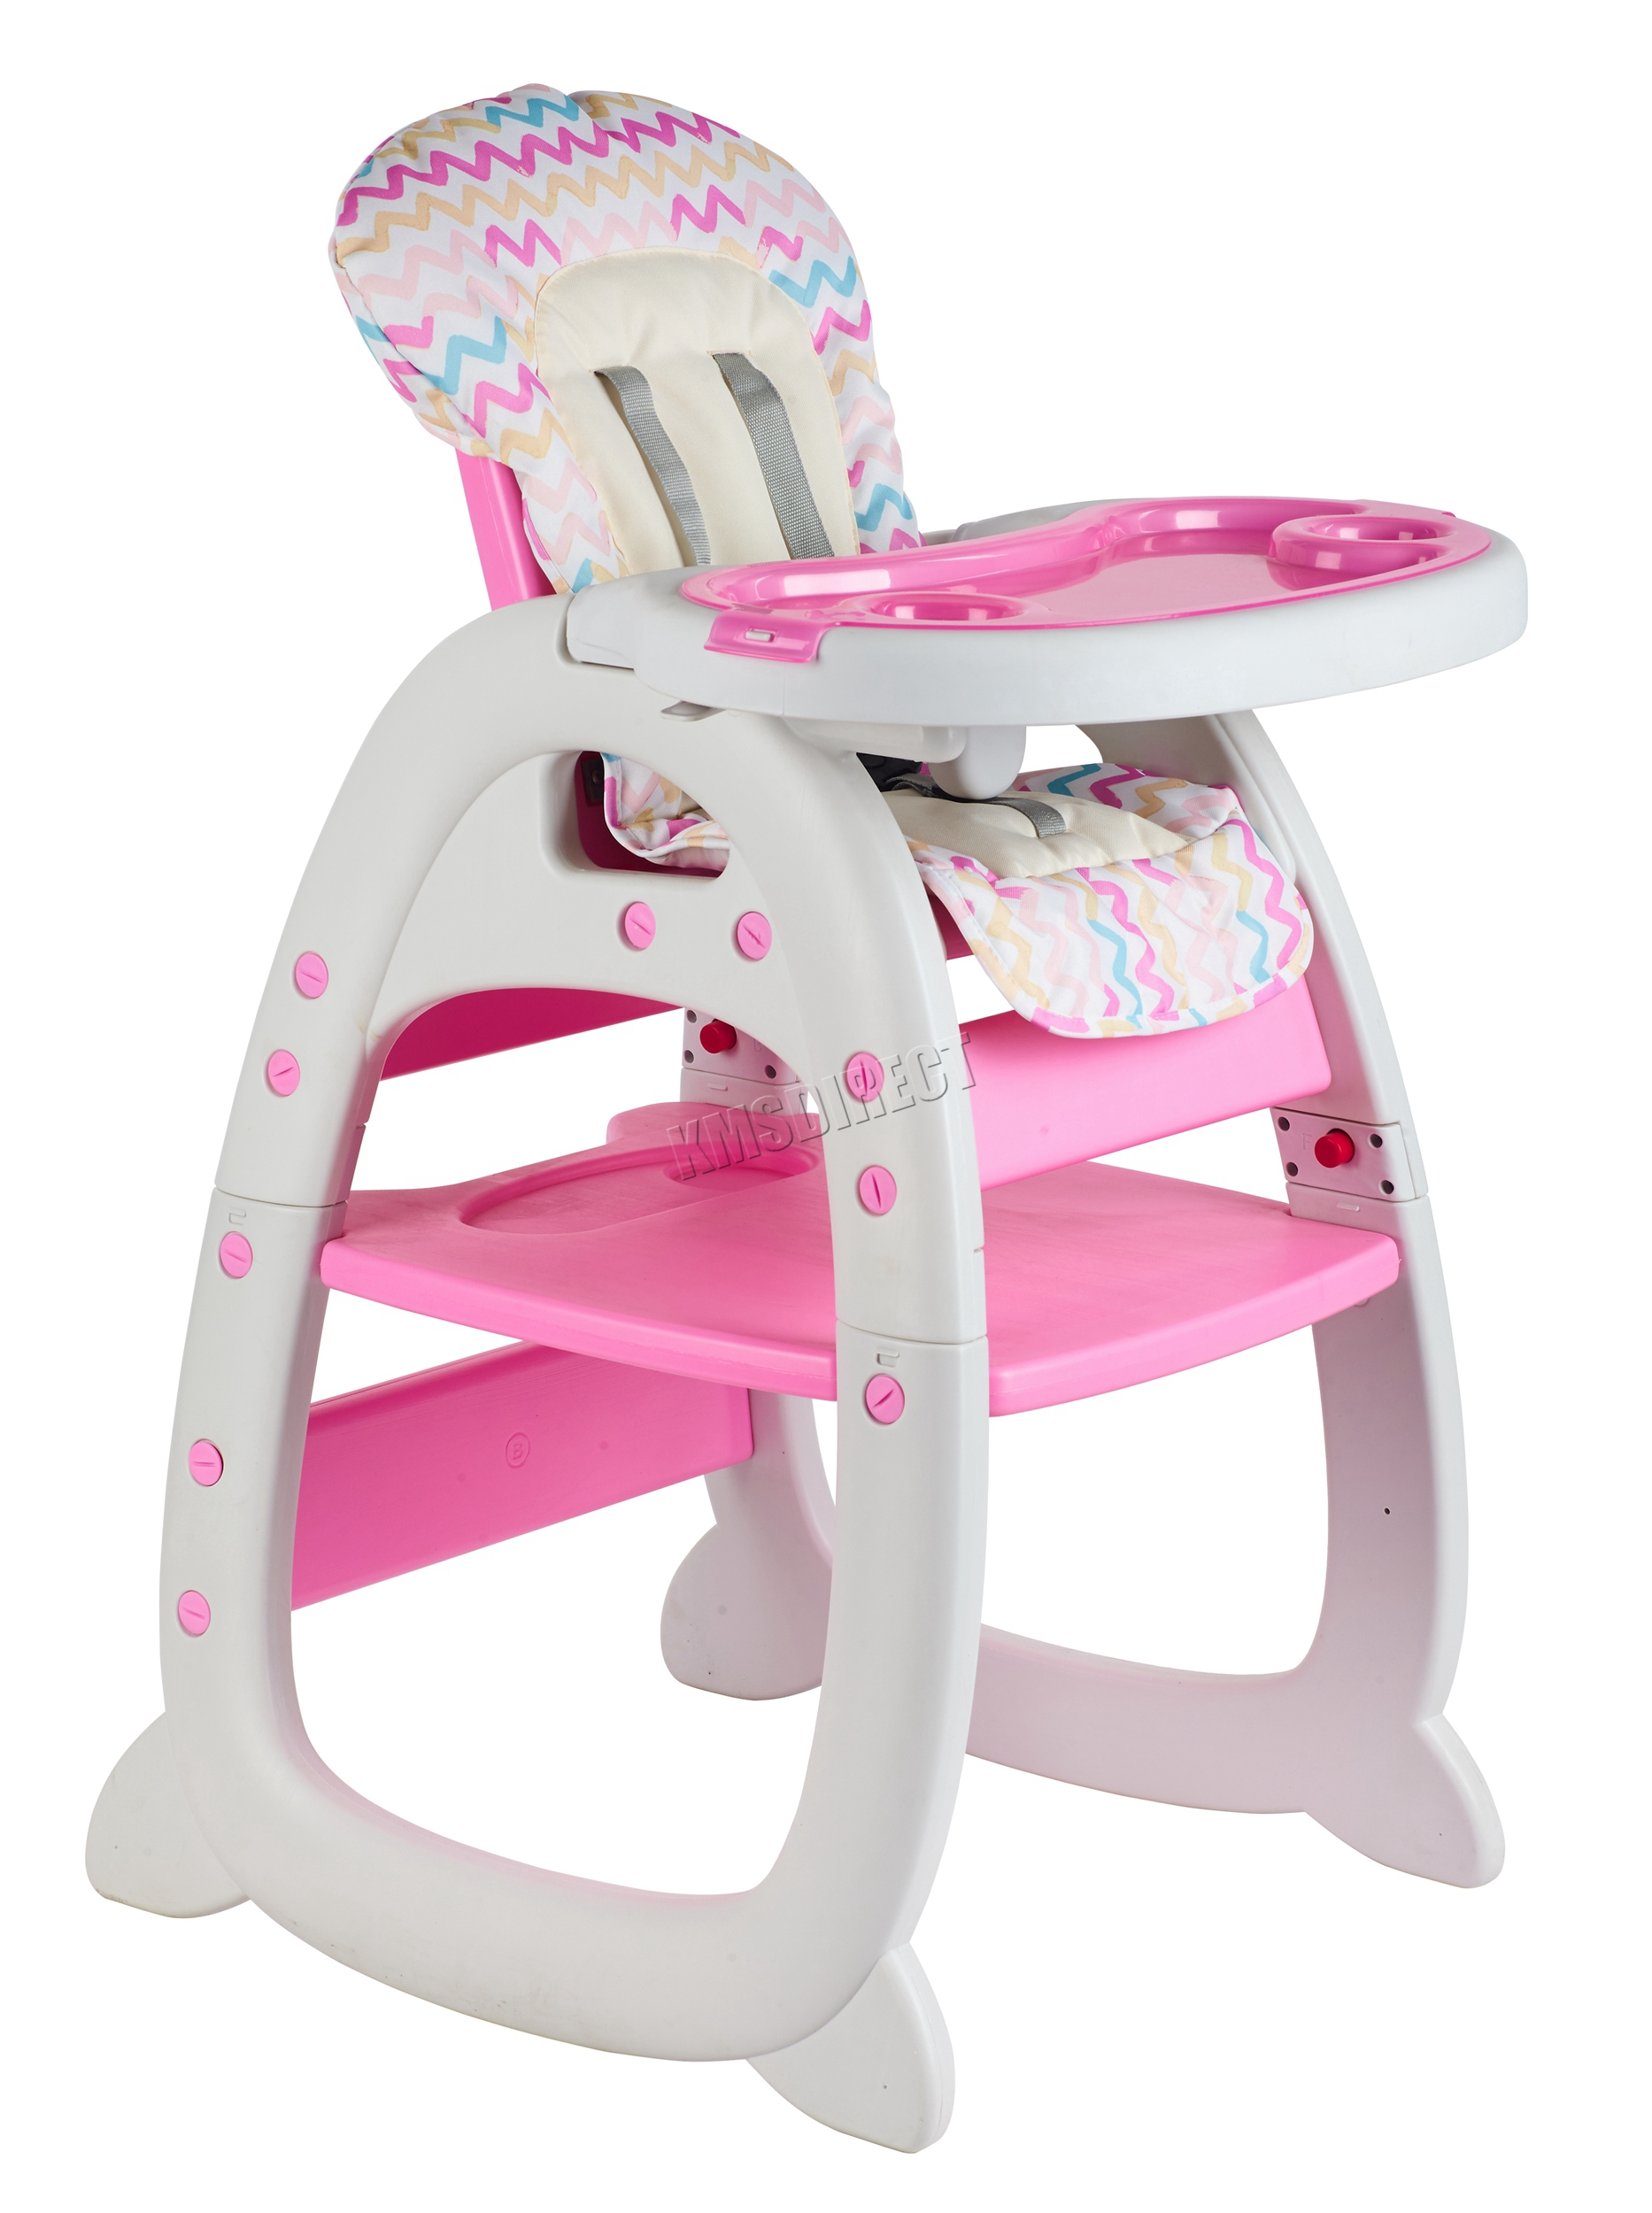 Baby Chair For Eating Foxhunter Baby Highchair Infant High Feeding Seat 3in1